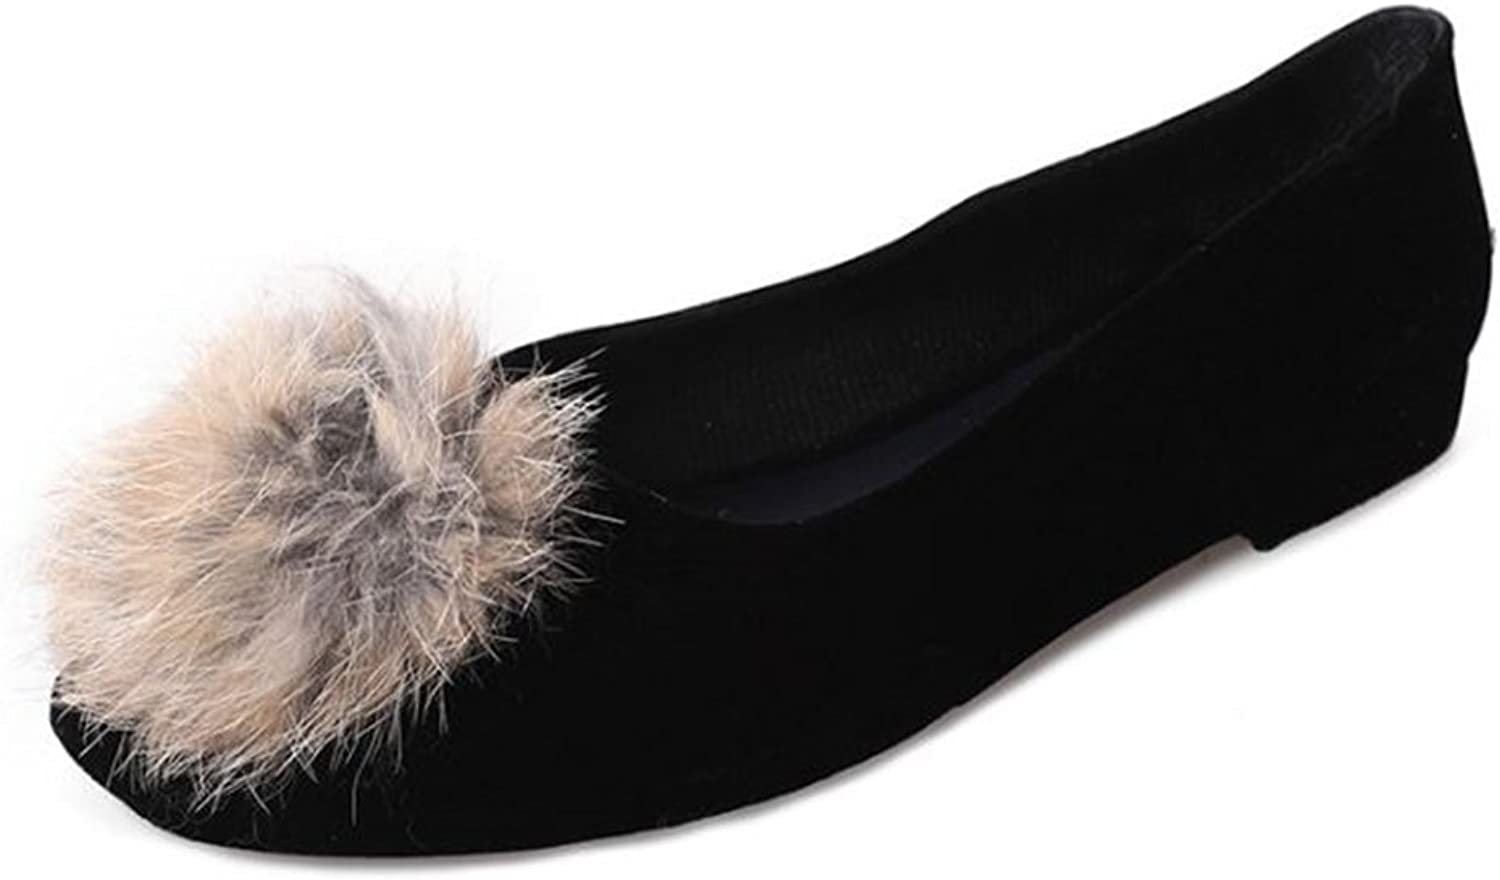 BeautyOriginal Womens Fur Slippers Slides Indoor Outdoor Flat Soles Soft Summer shoes